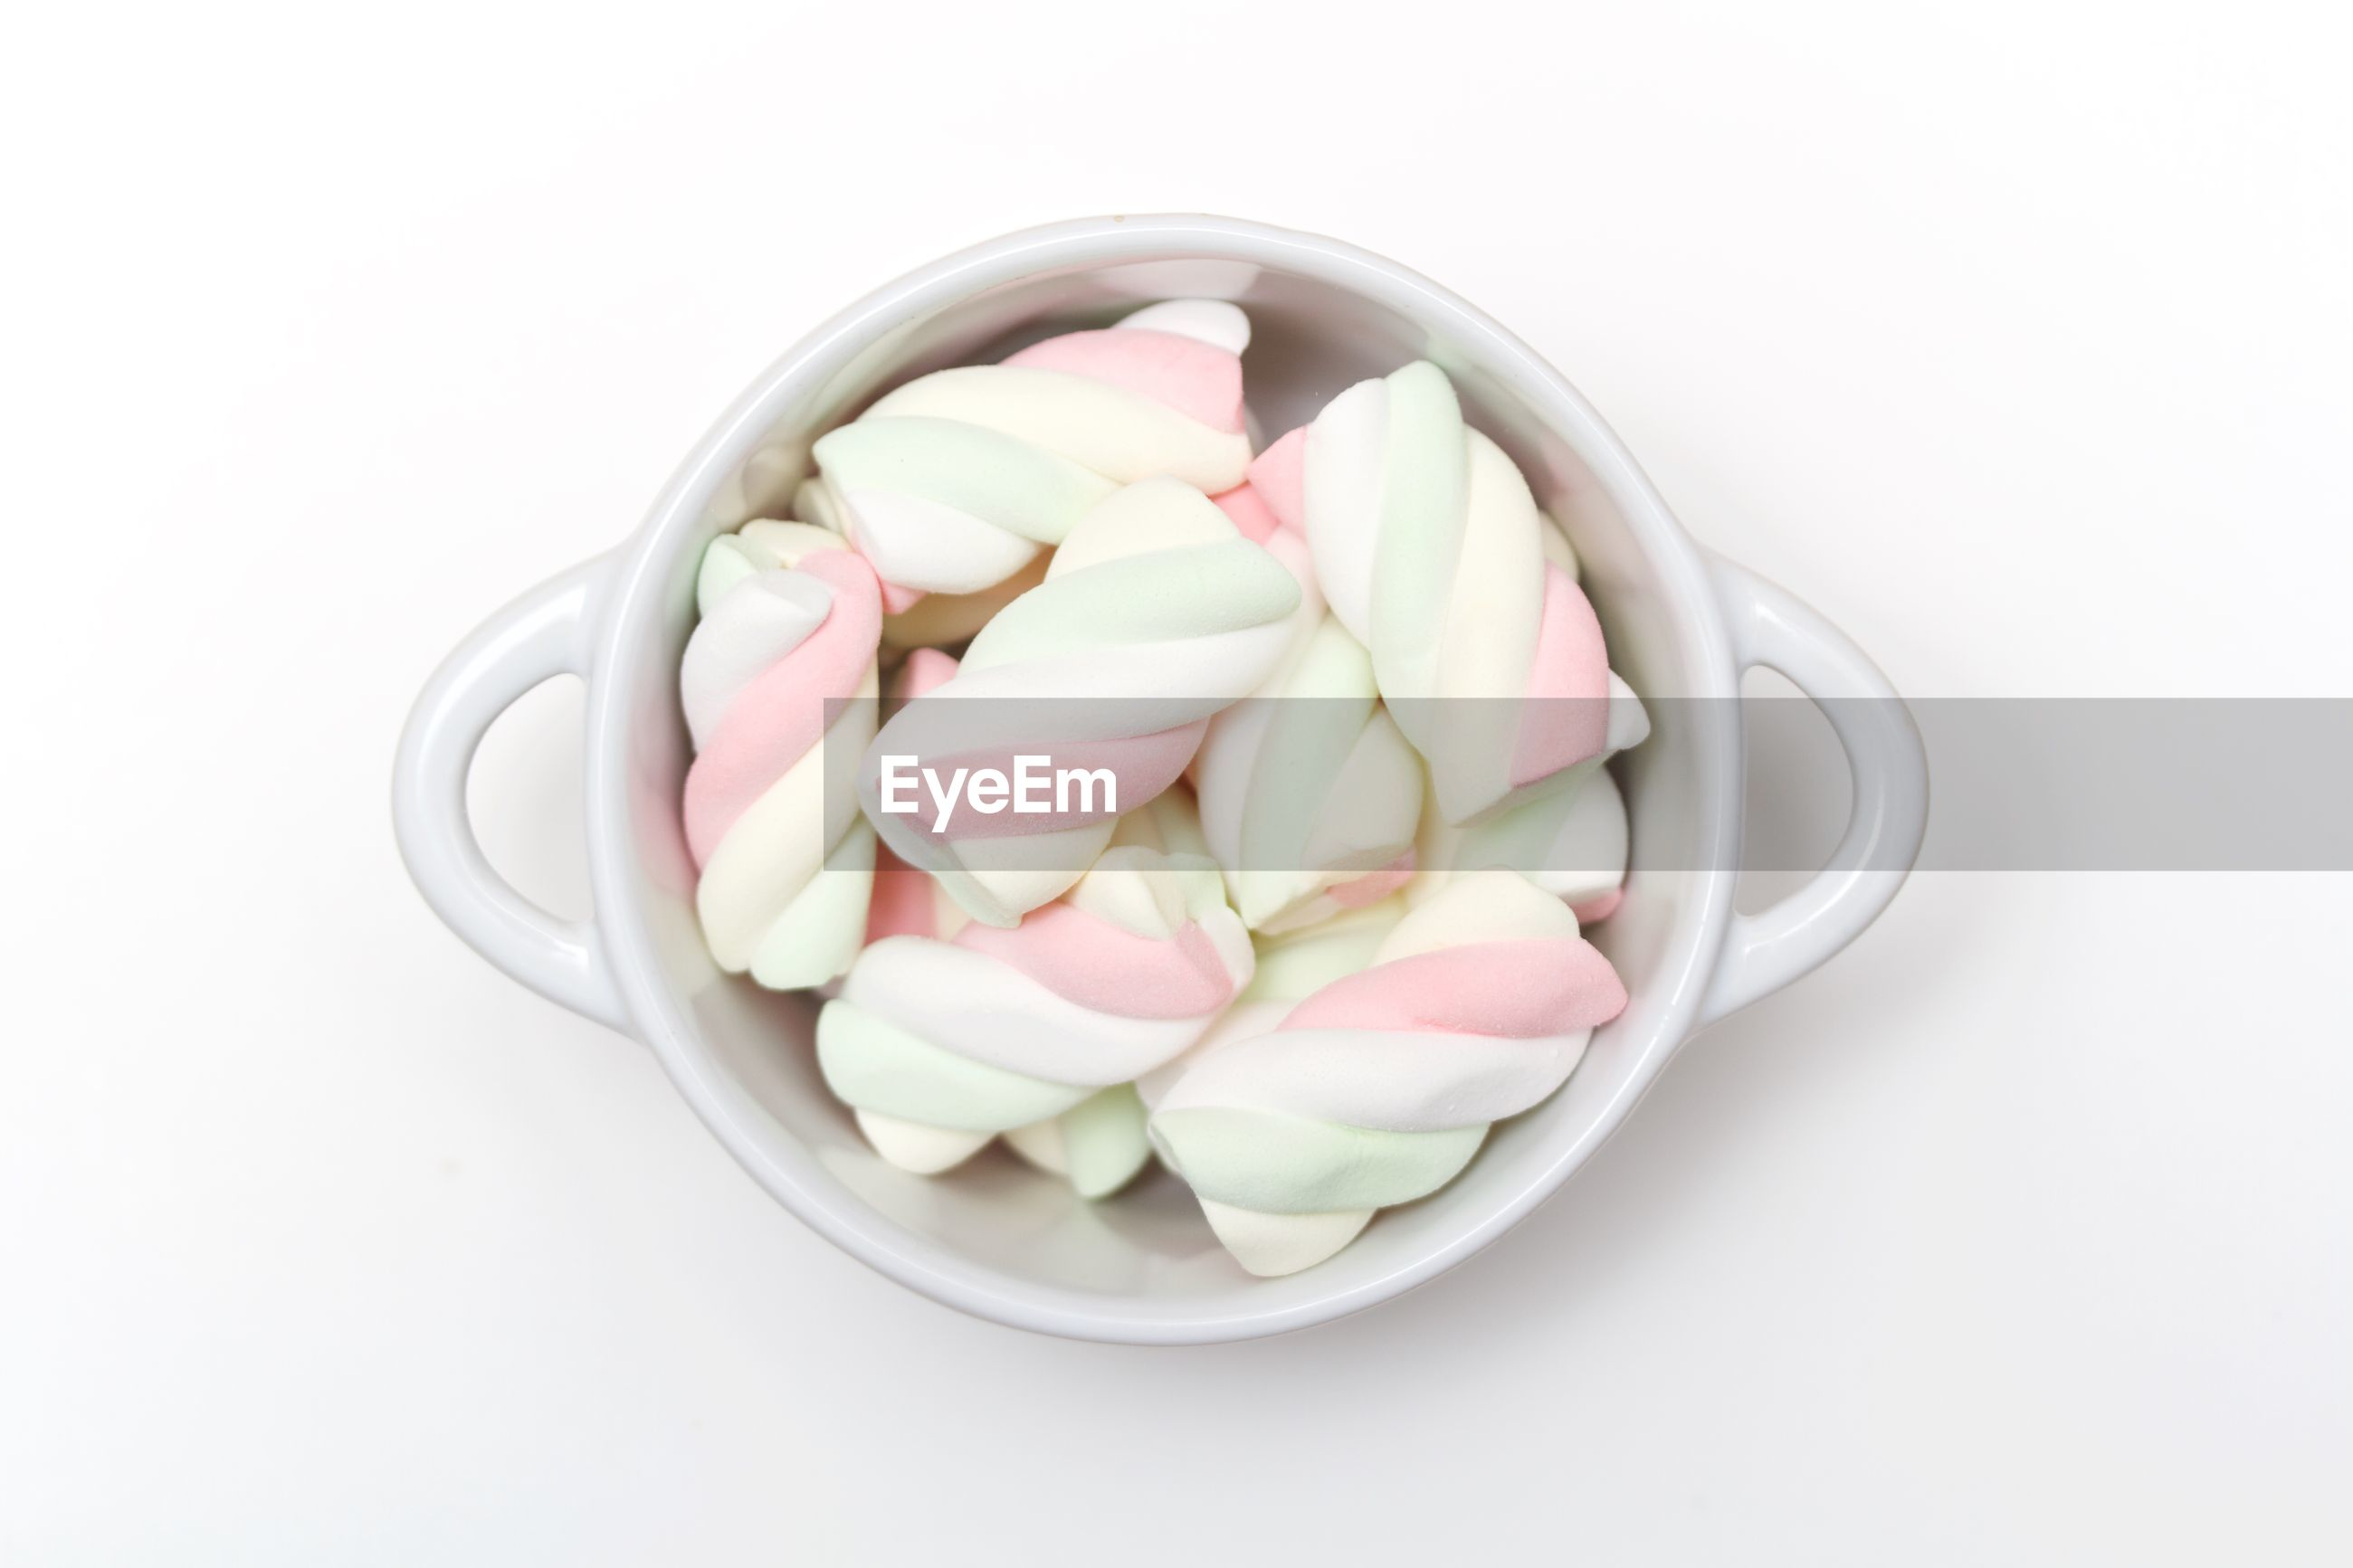 High angle view of marshmallow in bowl against white background